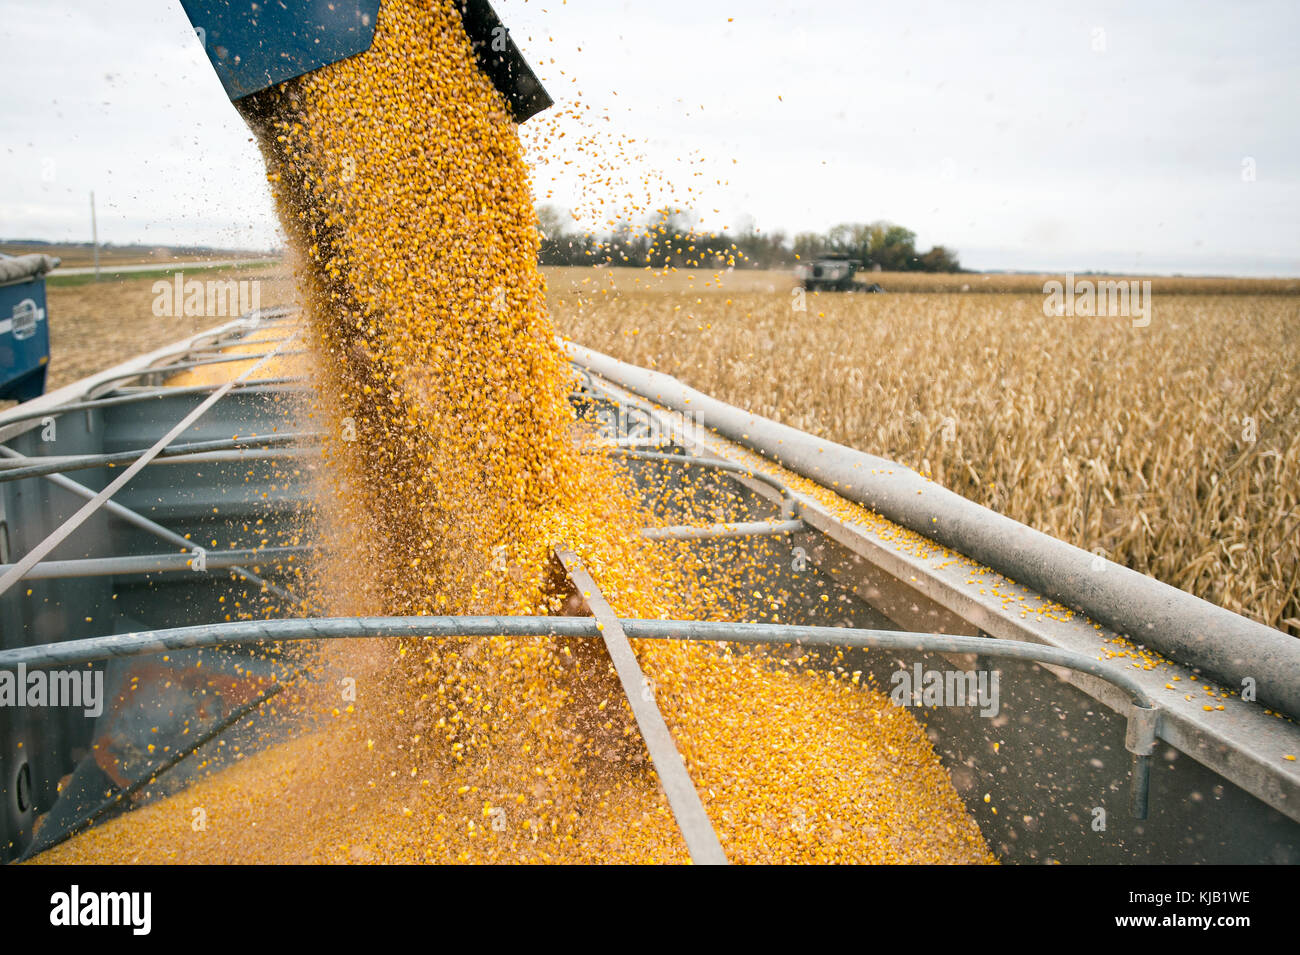 CLOSE UP UNLOADING CORN FROM GRAVITY BOX, BLOOMING PRAIRIE, MINNESOTA. - Stock Image